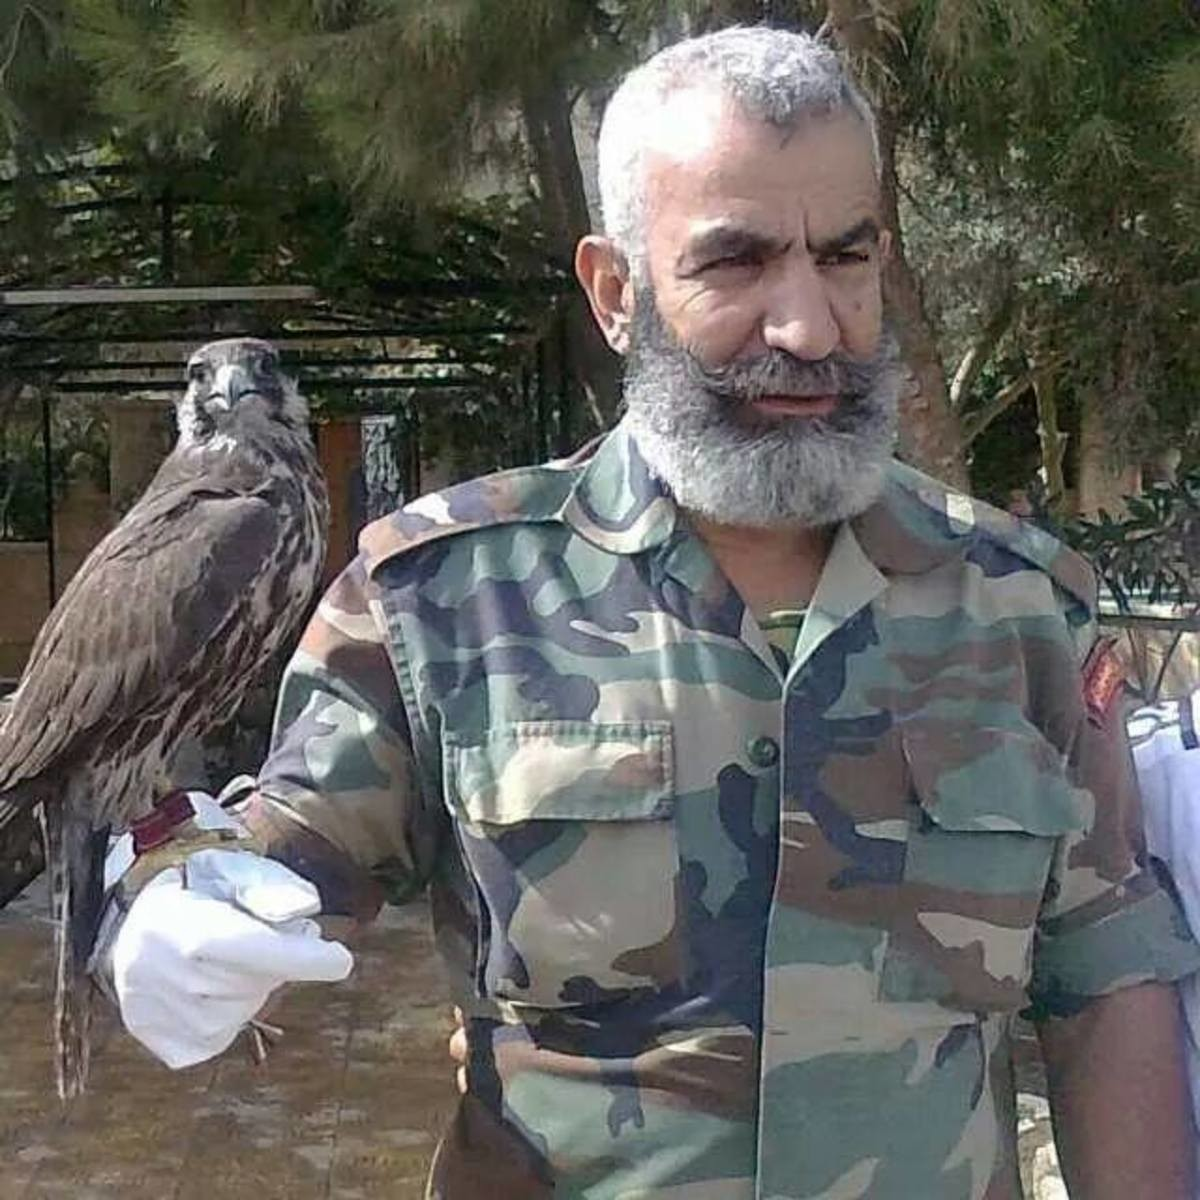 Issam. The Syrian Army's brigadier general Issam Zahreddine was killed today by a mine planted by daesh. General Zahreddine was a controversial figure, accused